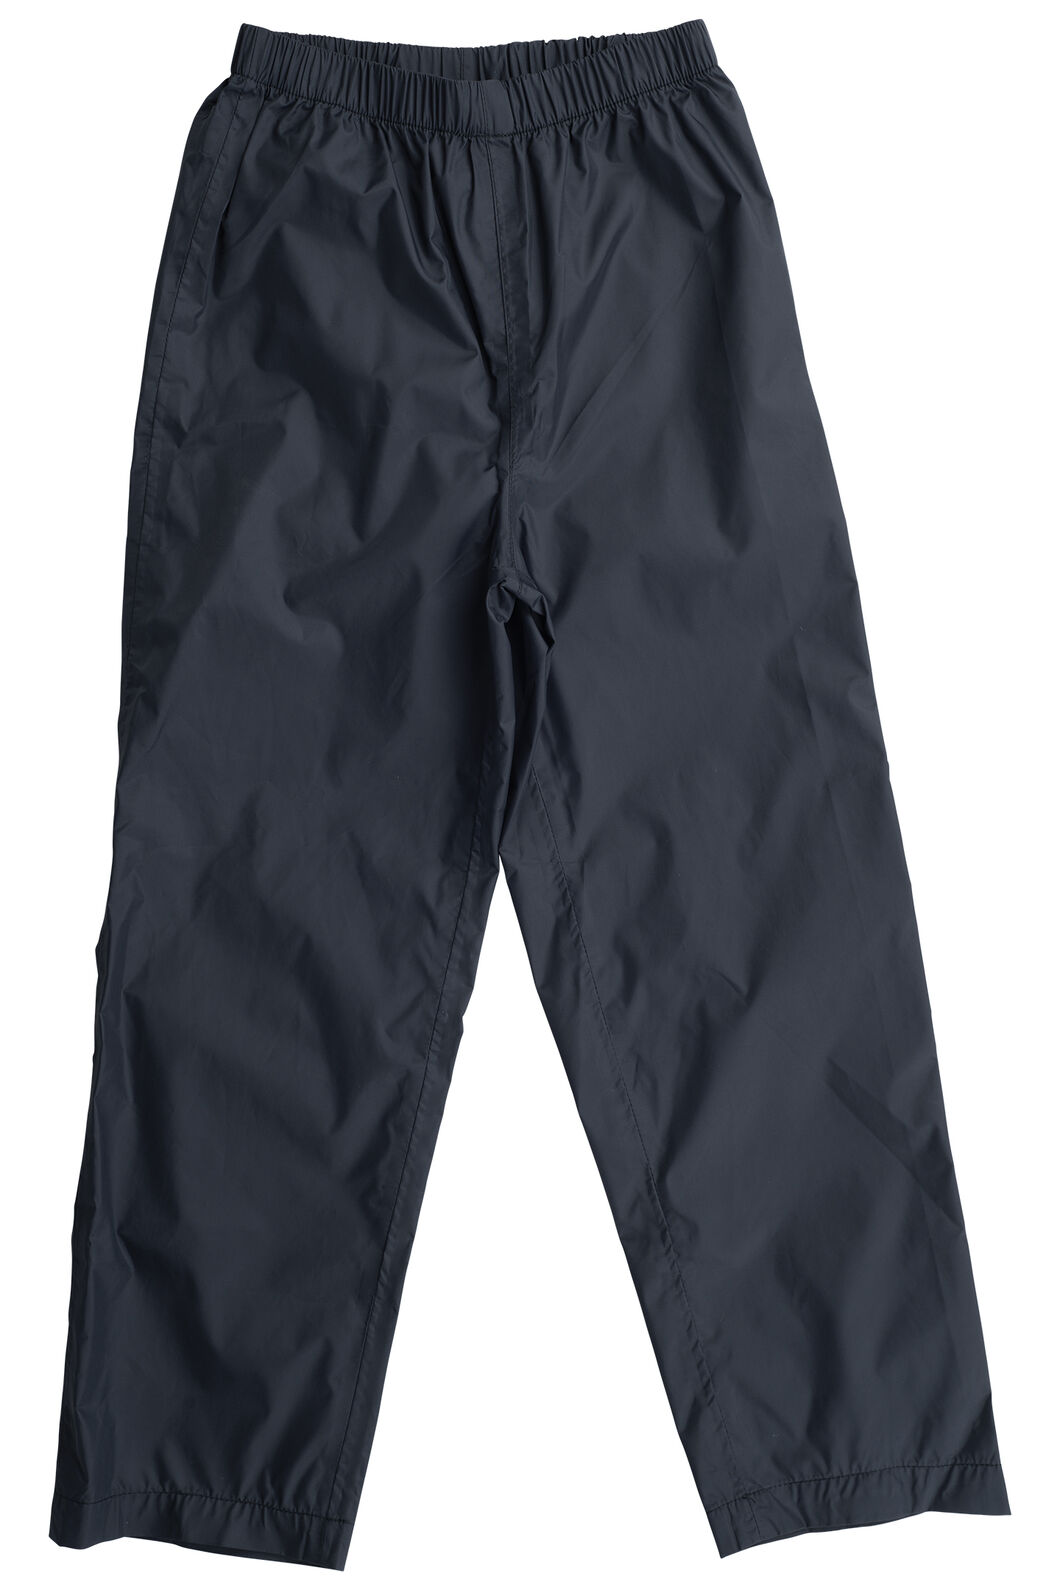 Macpac Pack-It-Pant - Kids', Black, hi-res